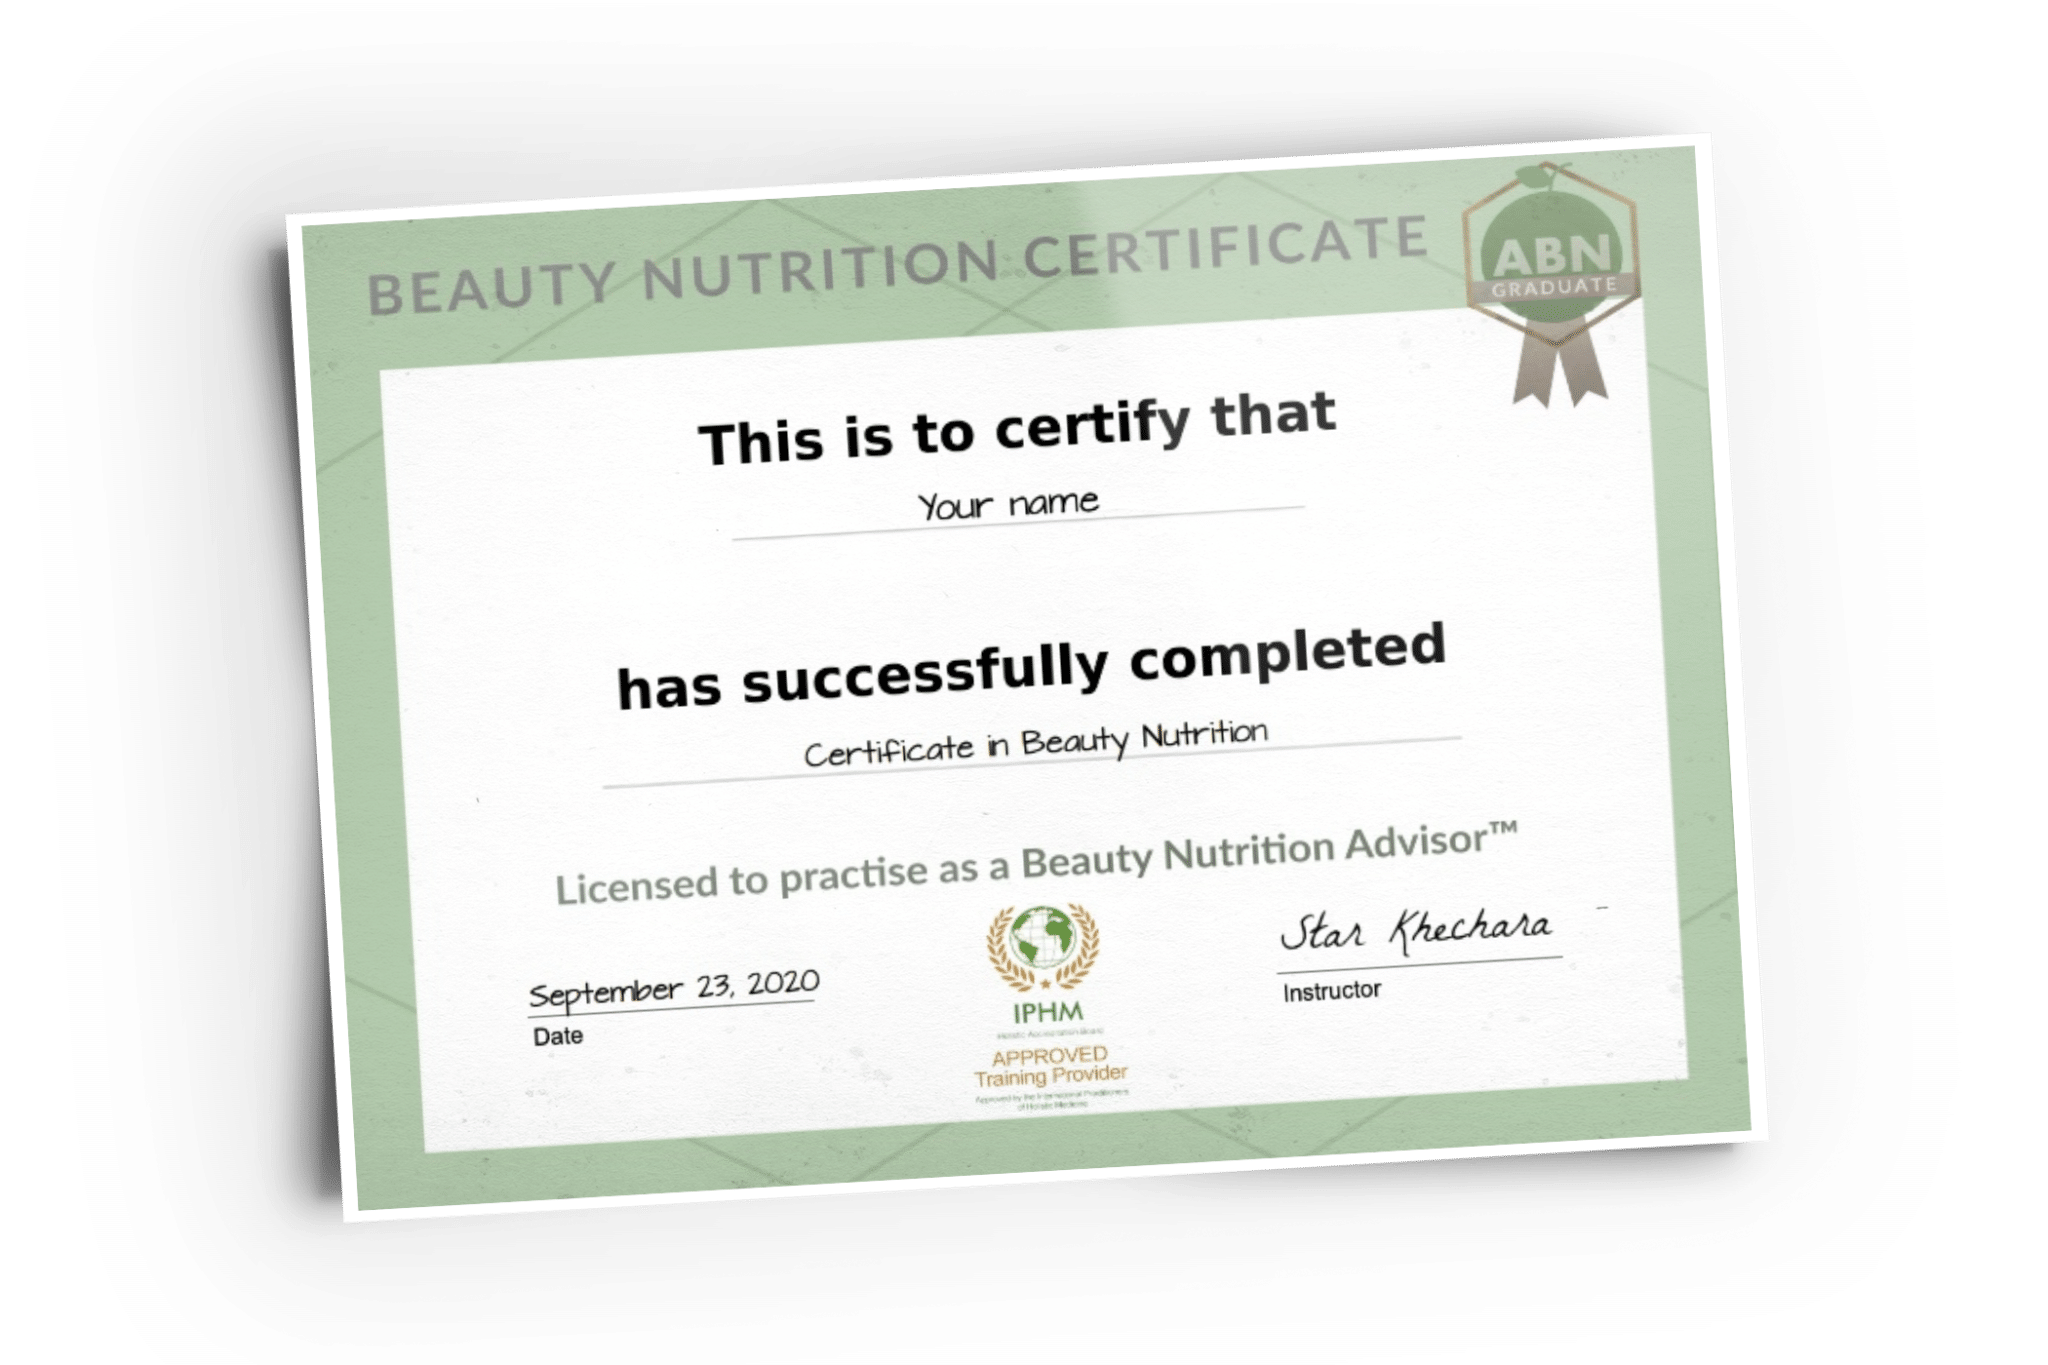 Image of a printed certificate in Beauty Nutrition